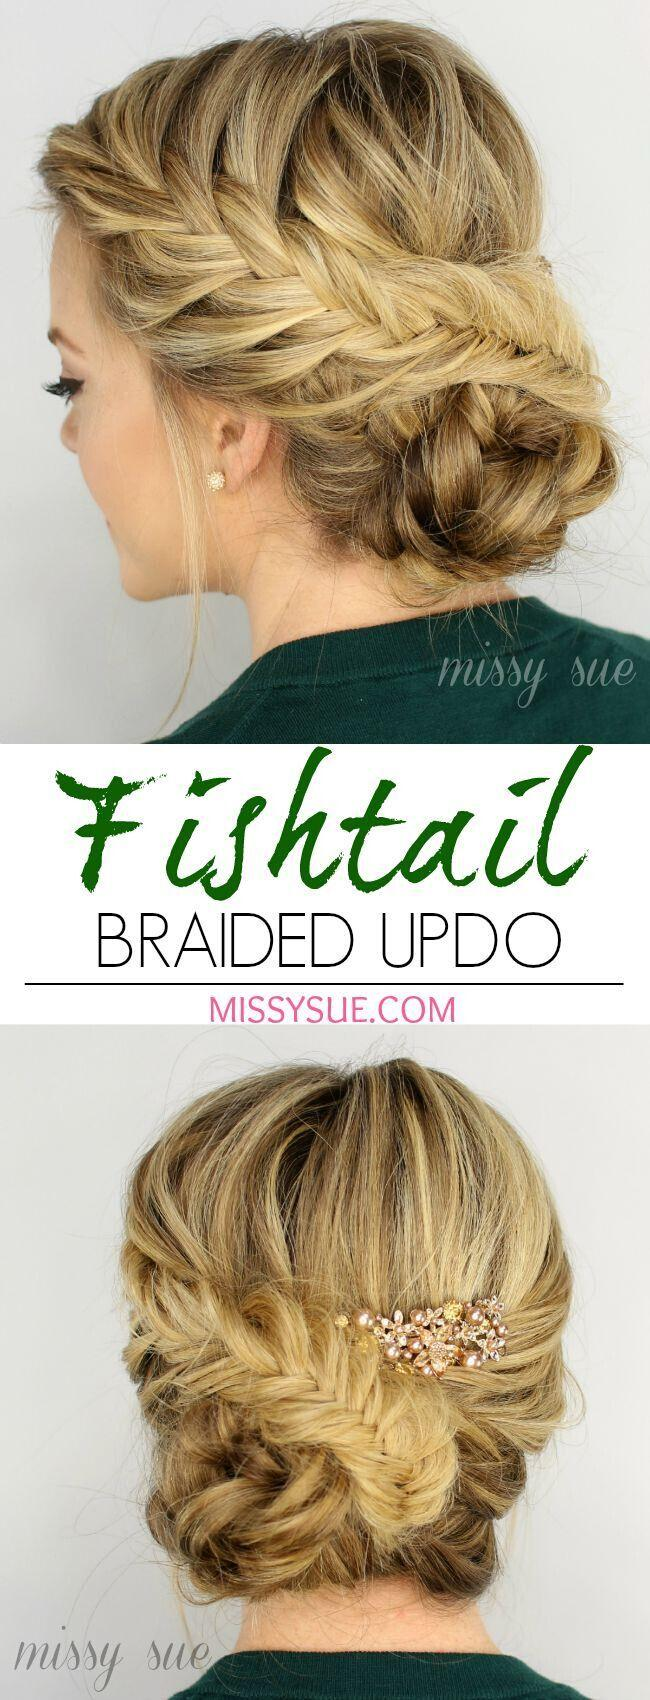 Mariage - 22 Gorgeous Braided Updo Hairstyles